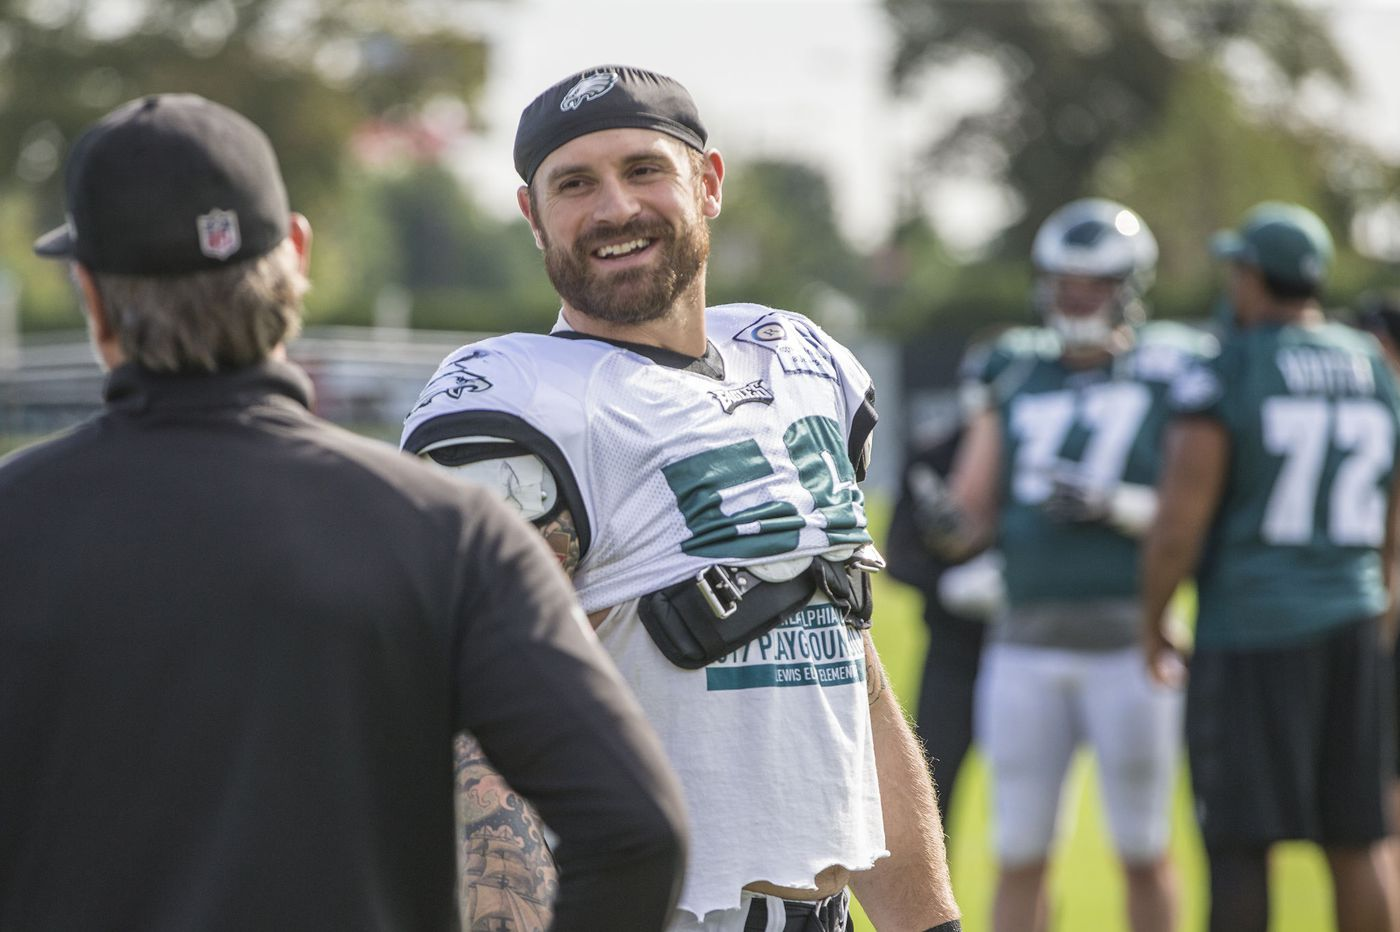 Philanthropy or football: At which is Eagles defensive end Chris Long better?